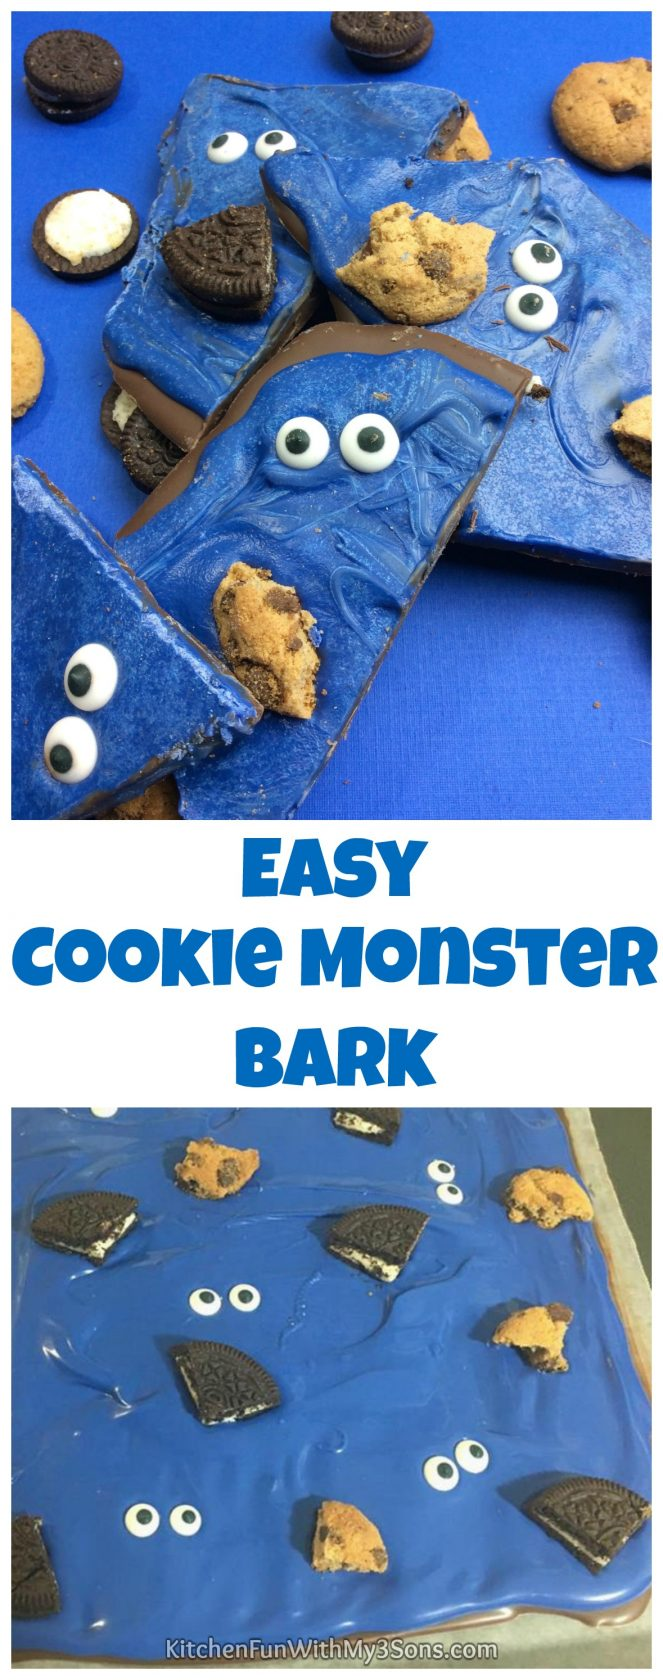 Easy Cookie Monster Bark